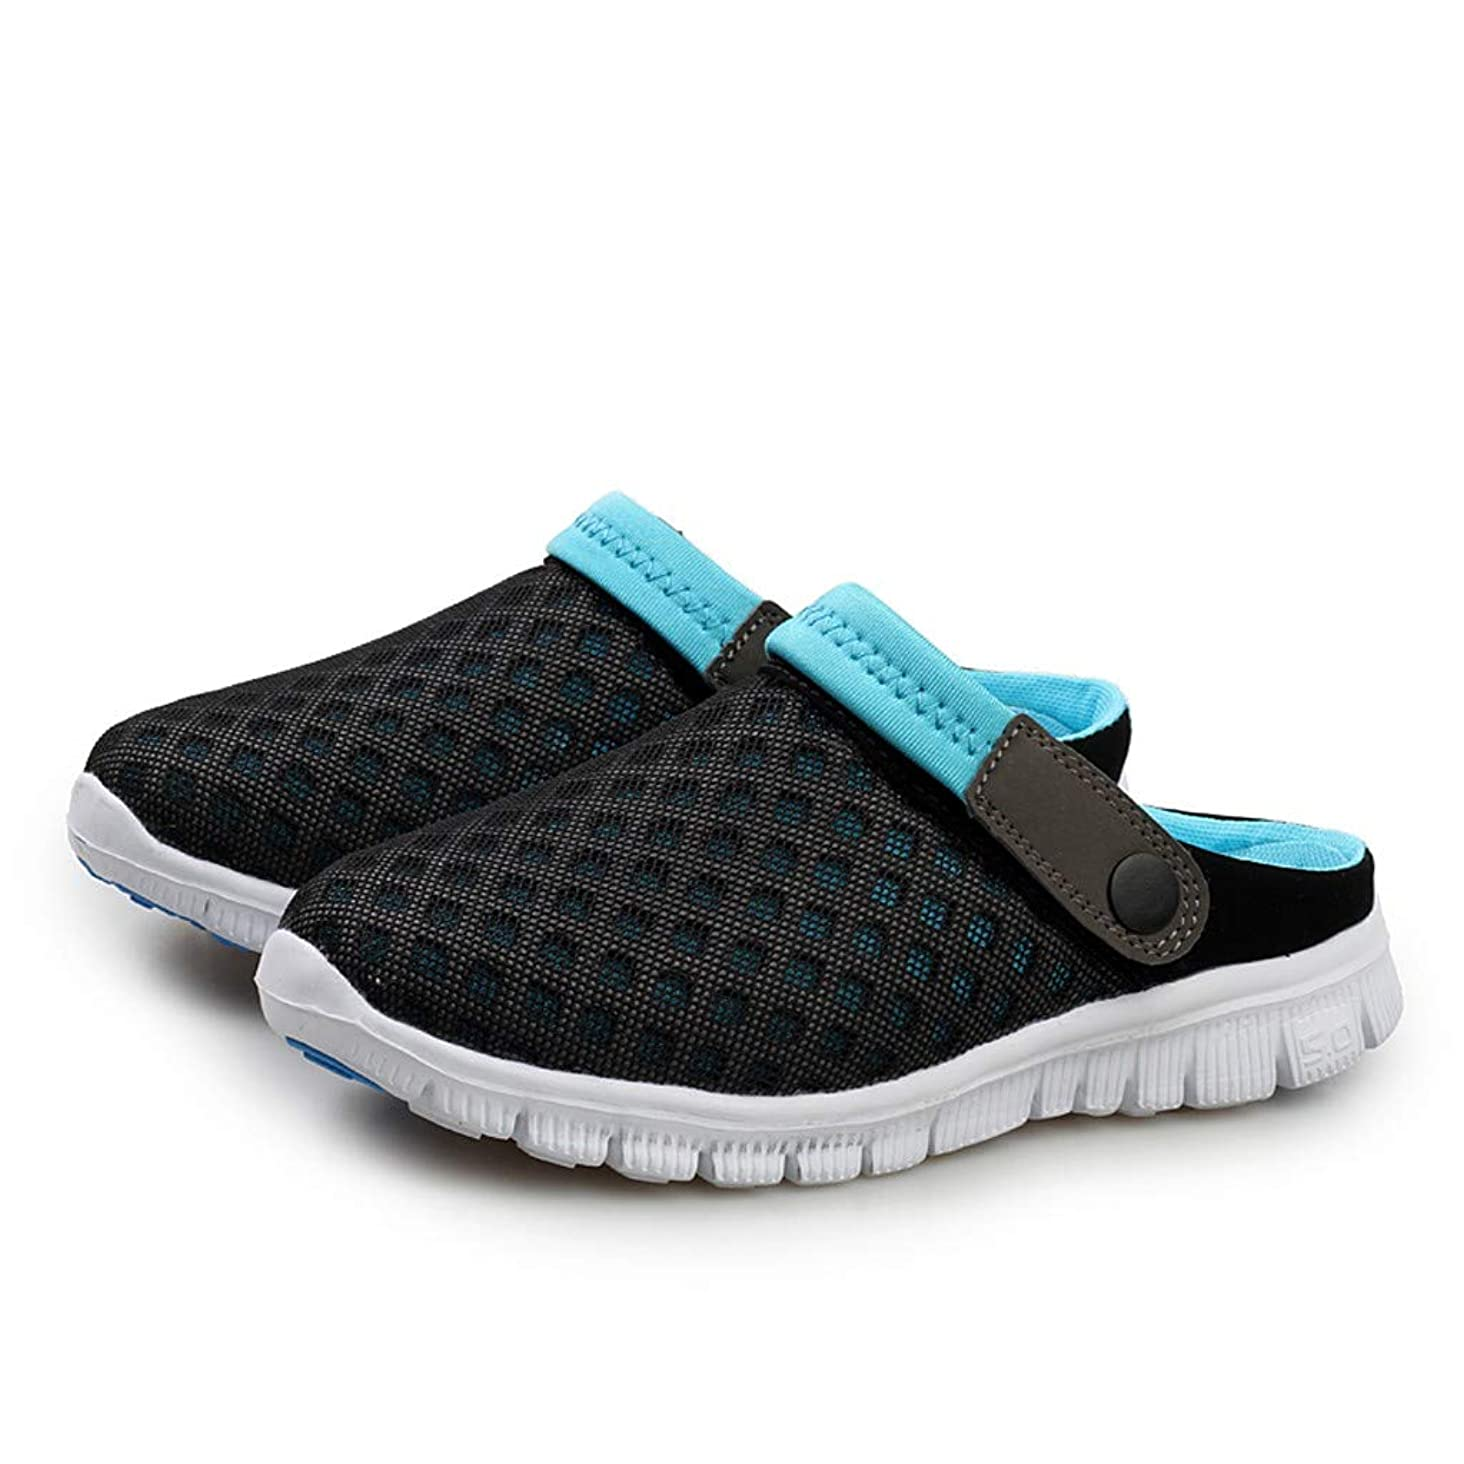 SOOTOP Mens Womens Garden Clog Shoes Mesh Breathable Quick Drying Sandals Walking Beach Sports Lightweight Slippers Comfortable Waterproof Mule Shoes